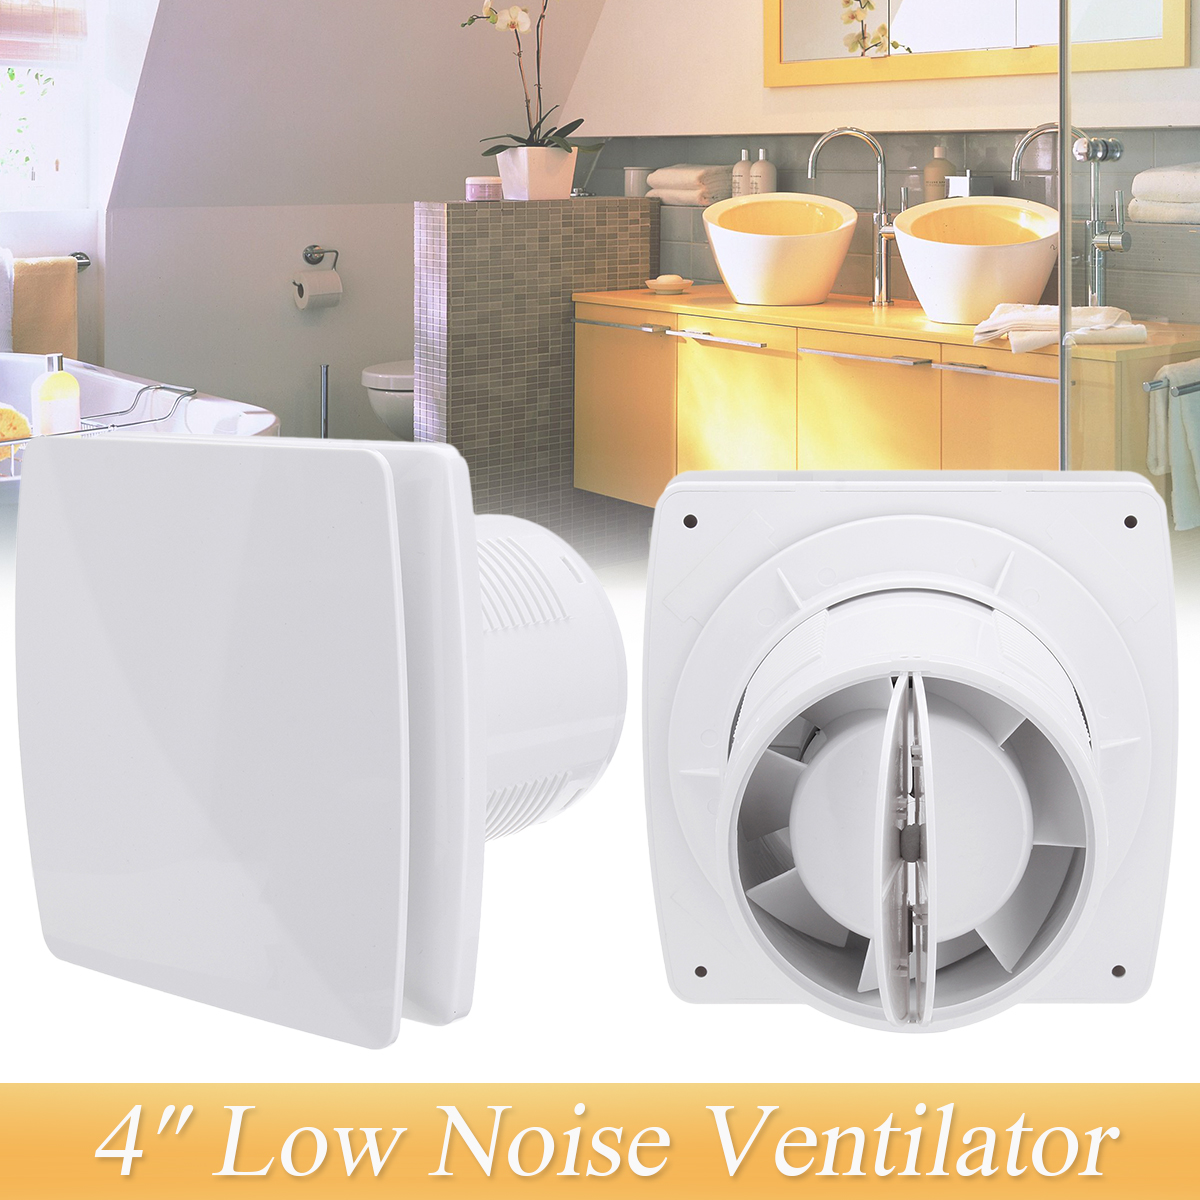 4 In Line Air Blower Ventilator 220V Low Noise Bathroom Ventilation Fan Hotel Wall Fan Silent